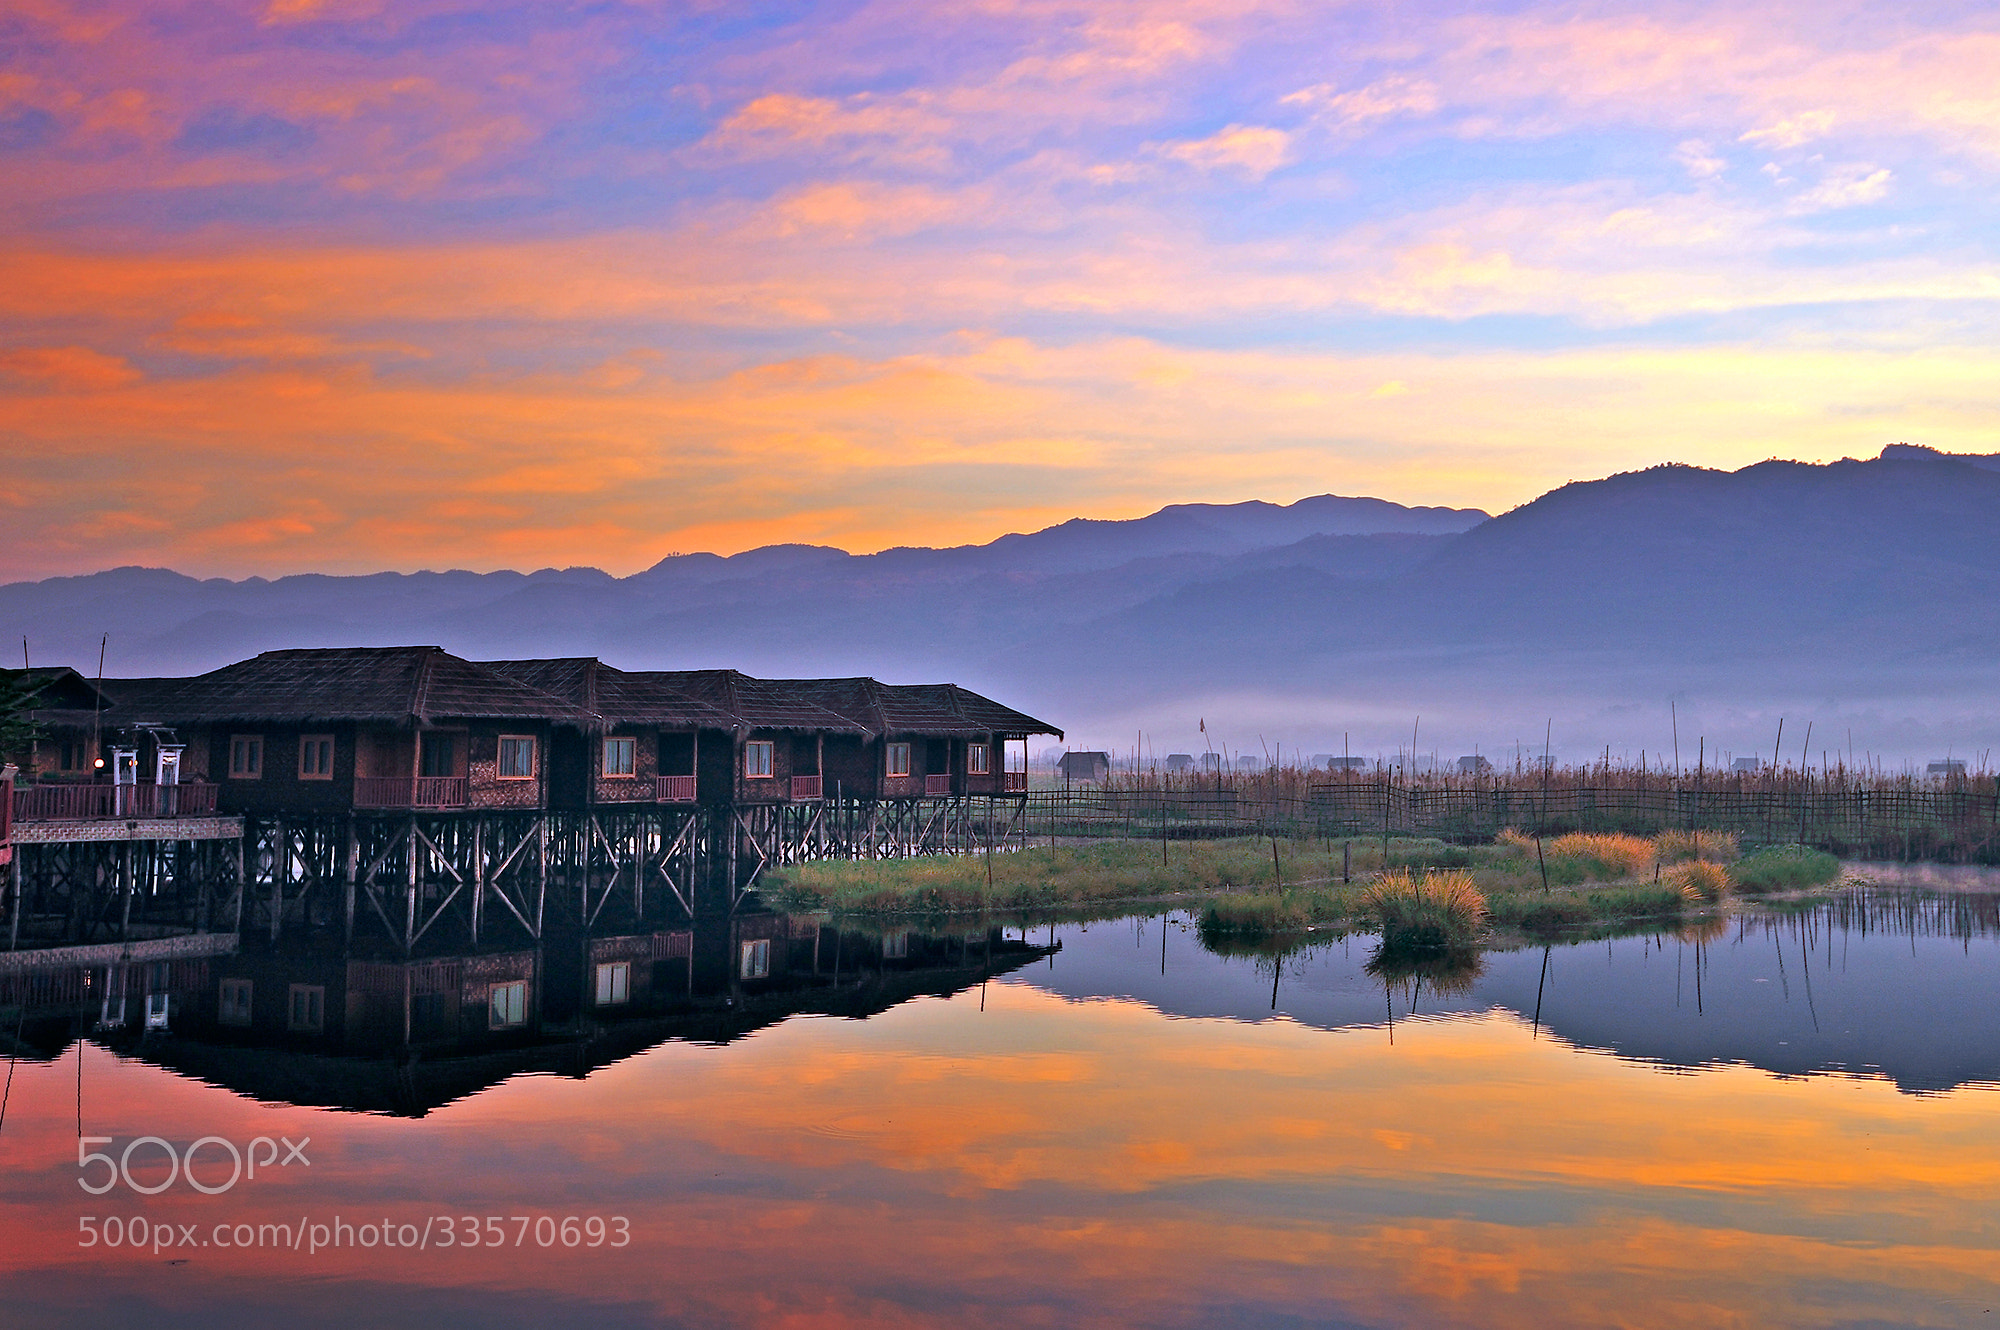 Photograph Good morning Inle by Puchong Pannoi on 500px